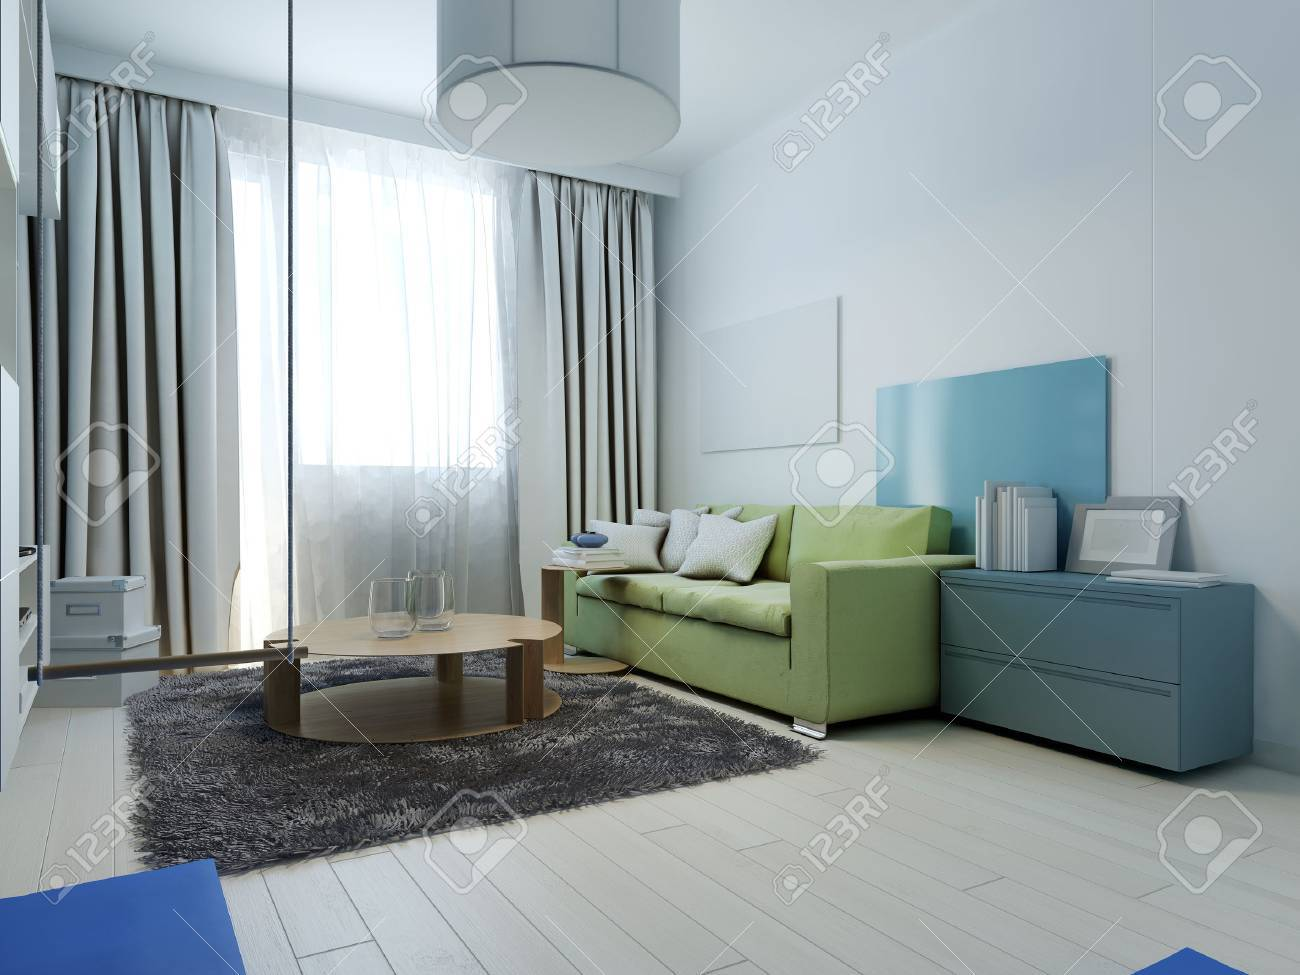 Living room kitsch style. Interior living room with colored furniture